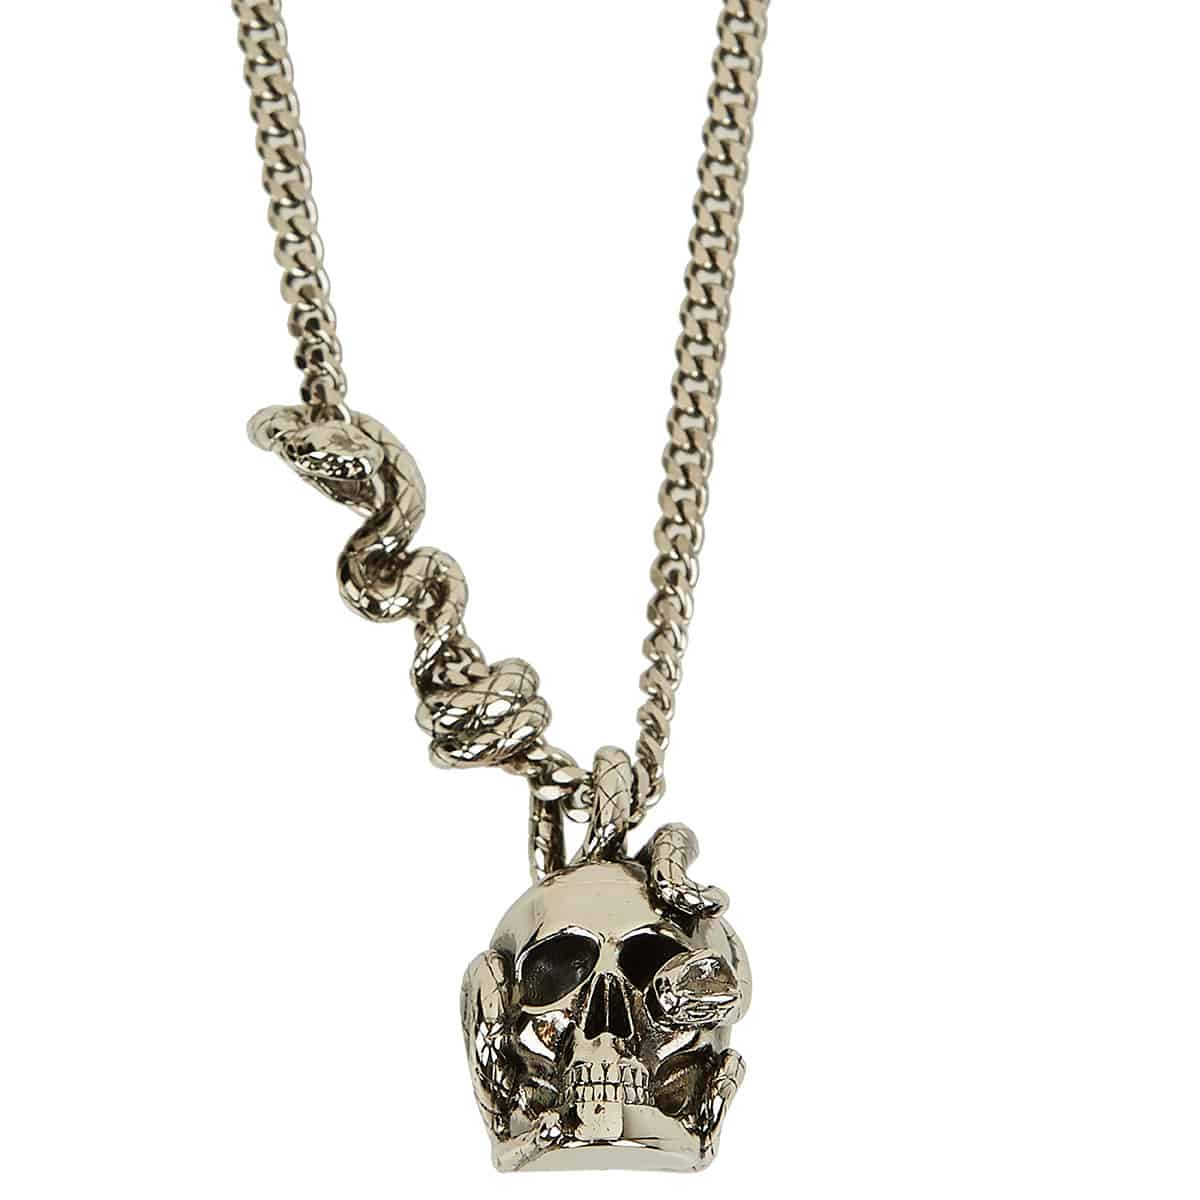 Snake and skull chain necklace